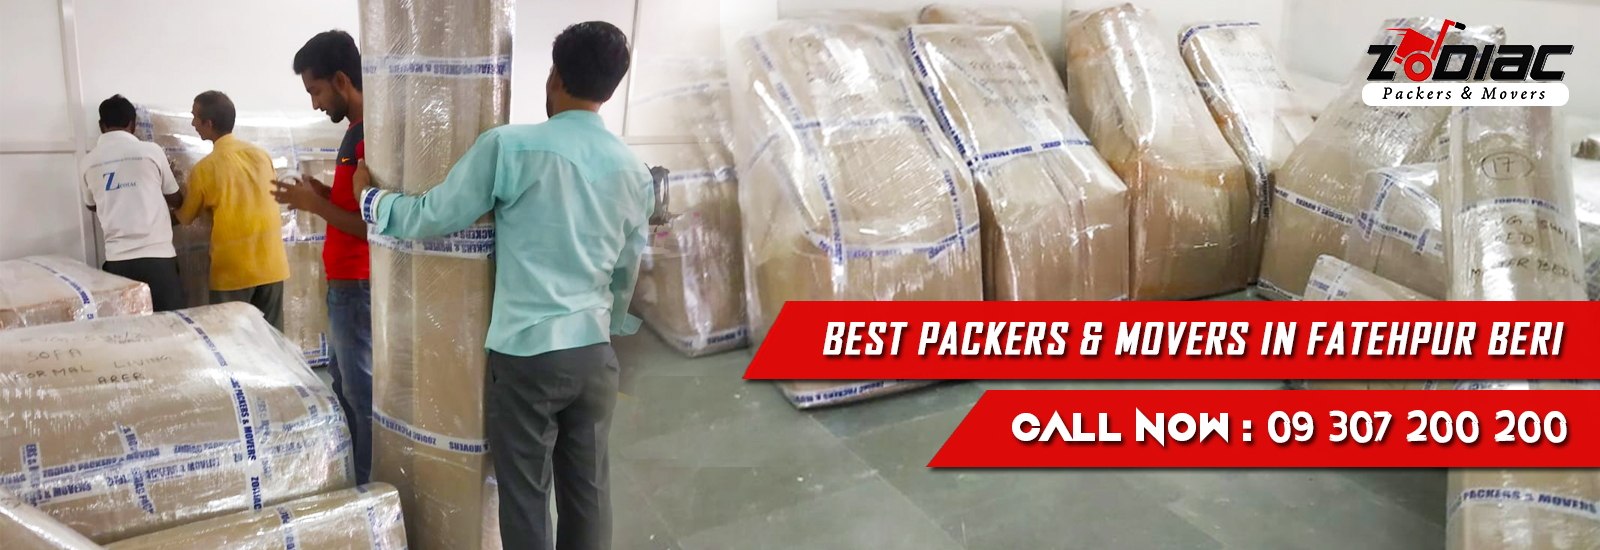 Packers and Movers in Fatehpur Beri